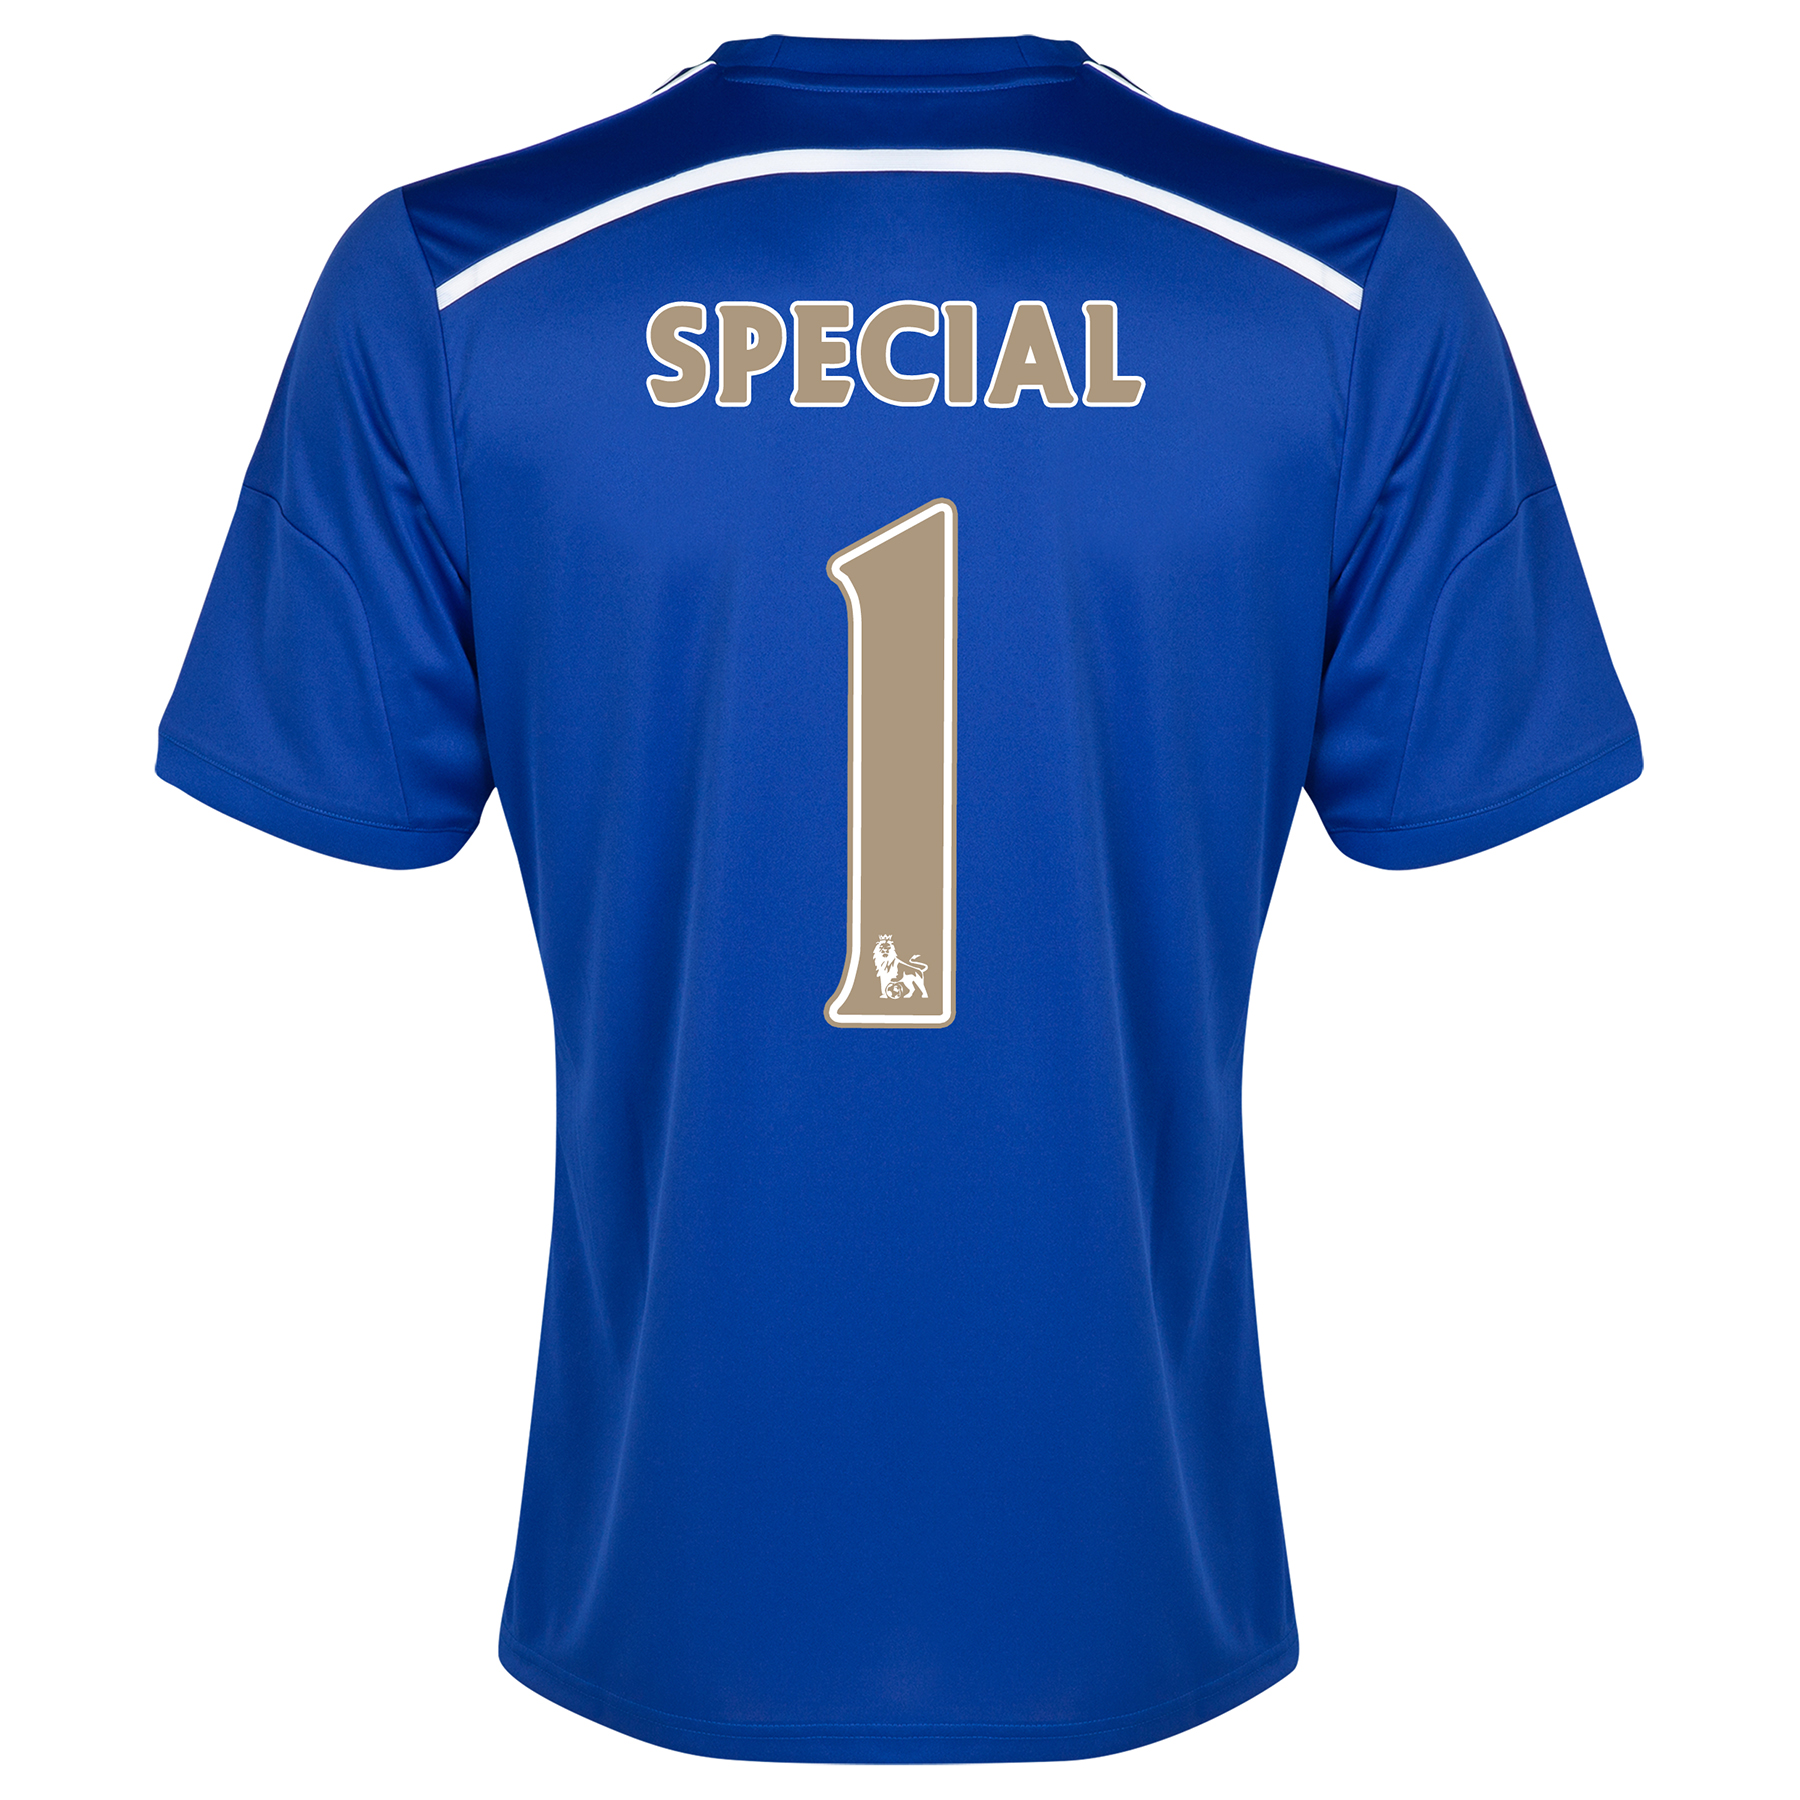 Chelsea Home Shirt 2014/15 Blue with Special 1 printing